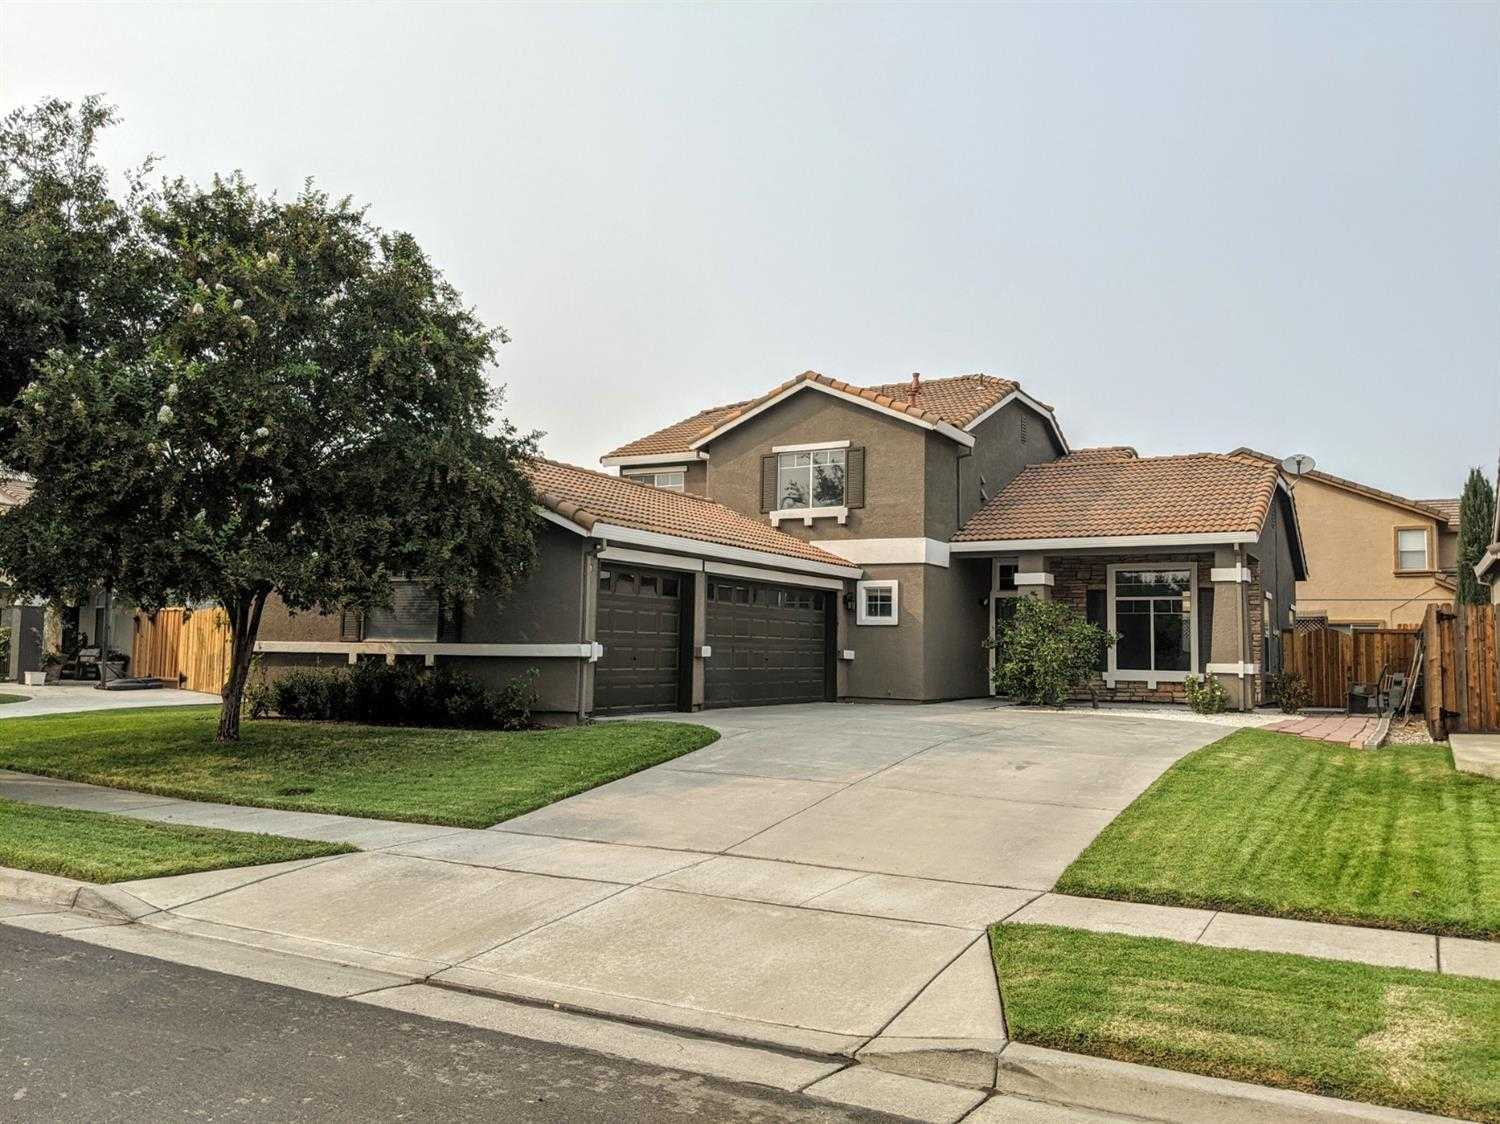 $525,000 - 4Br/3Ba -  for Sale in West Sacramento